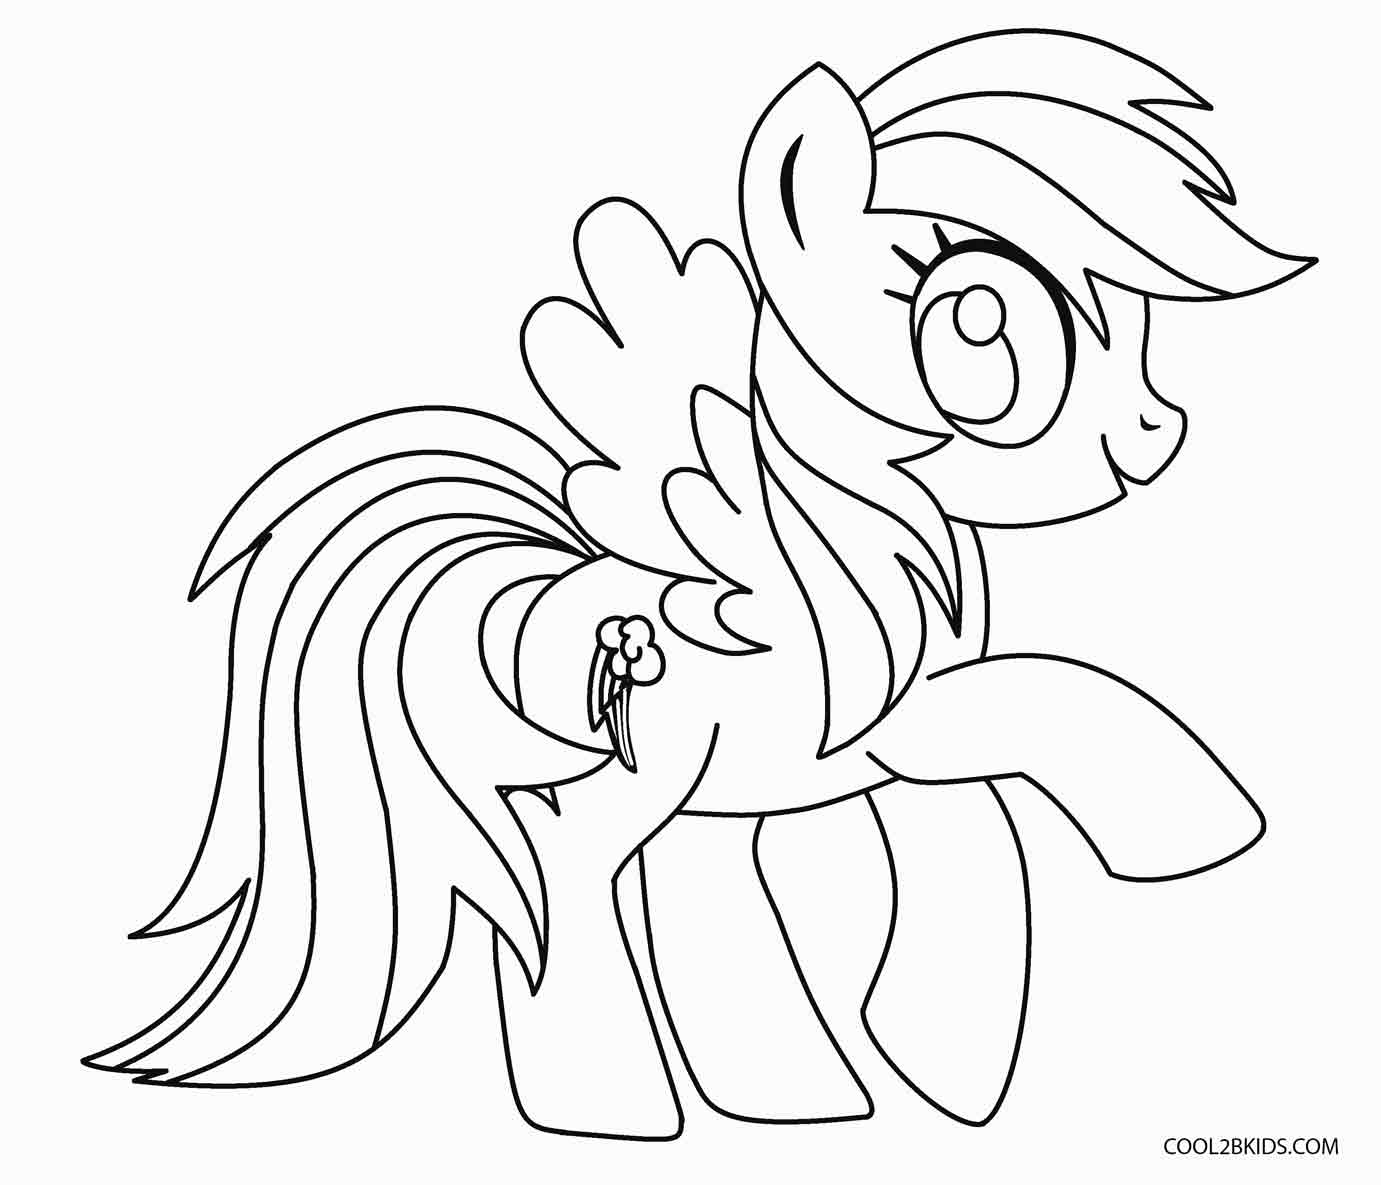 my little pony coloring pages rainbow dash rainbow dash coloring pages best coloring pages for kids coloring dash rainbow pages little my pony